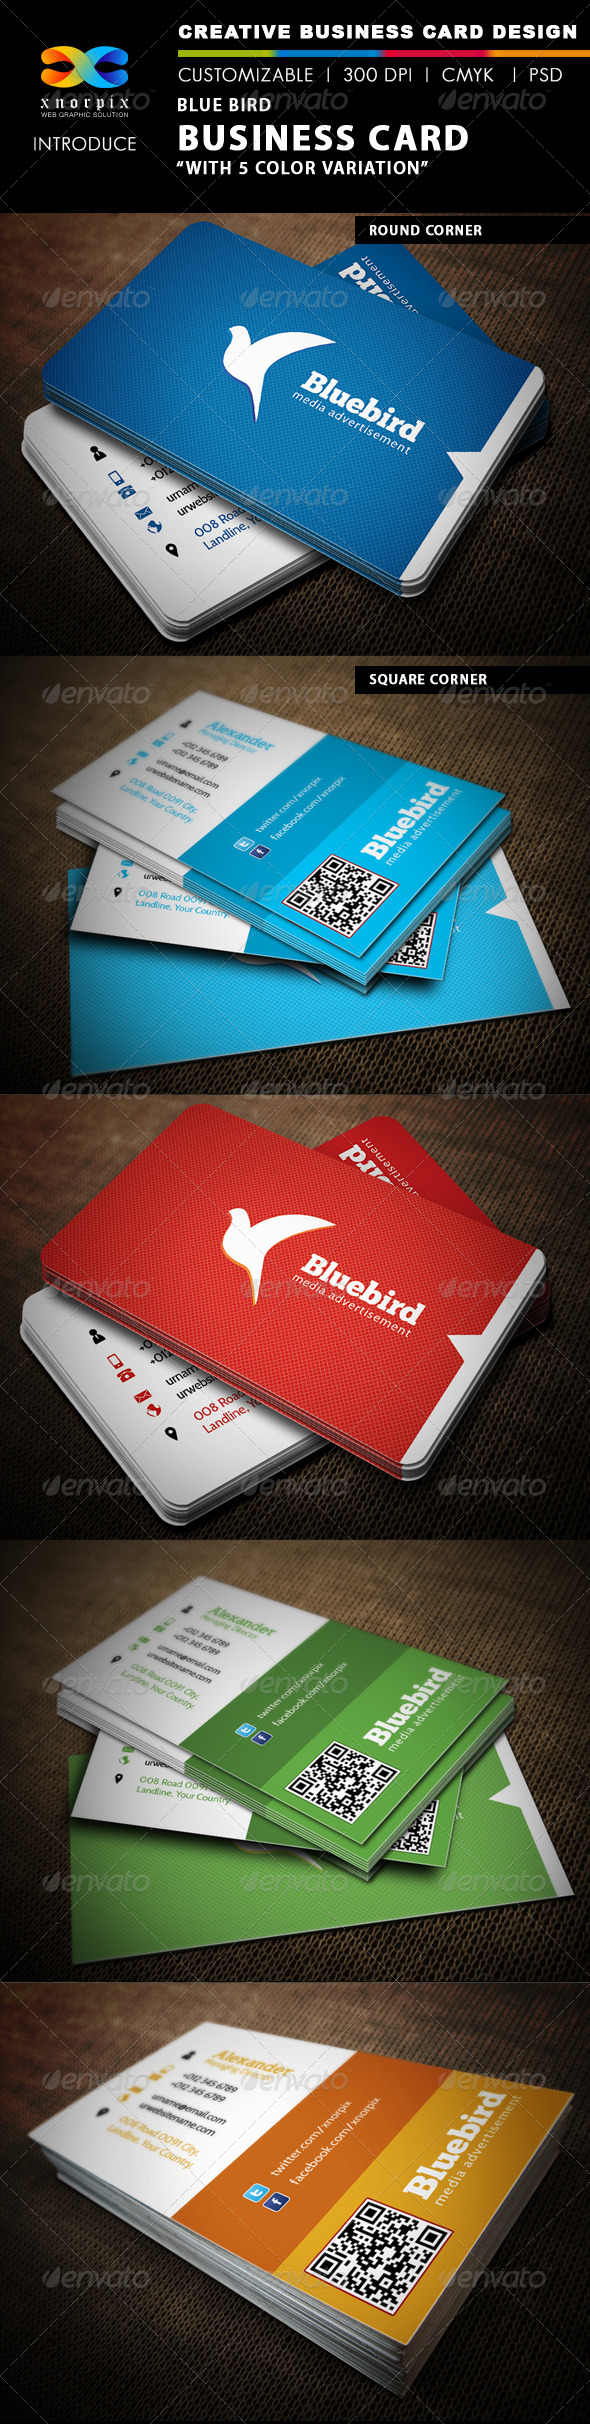 GraphicRiver Blue Bird Business Card 4860732